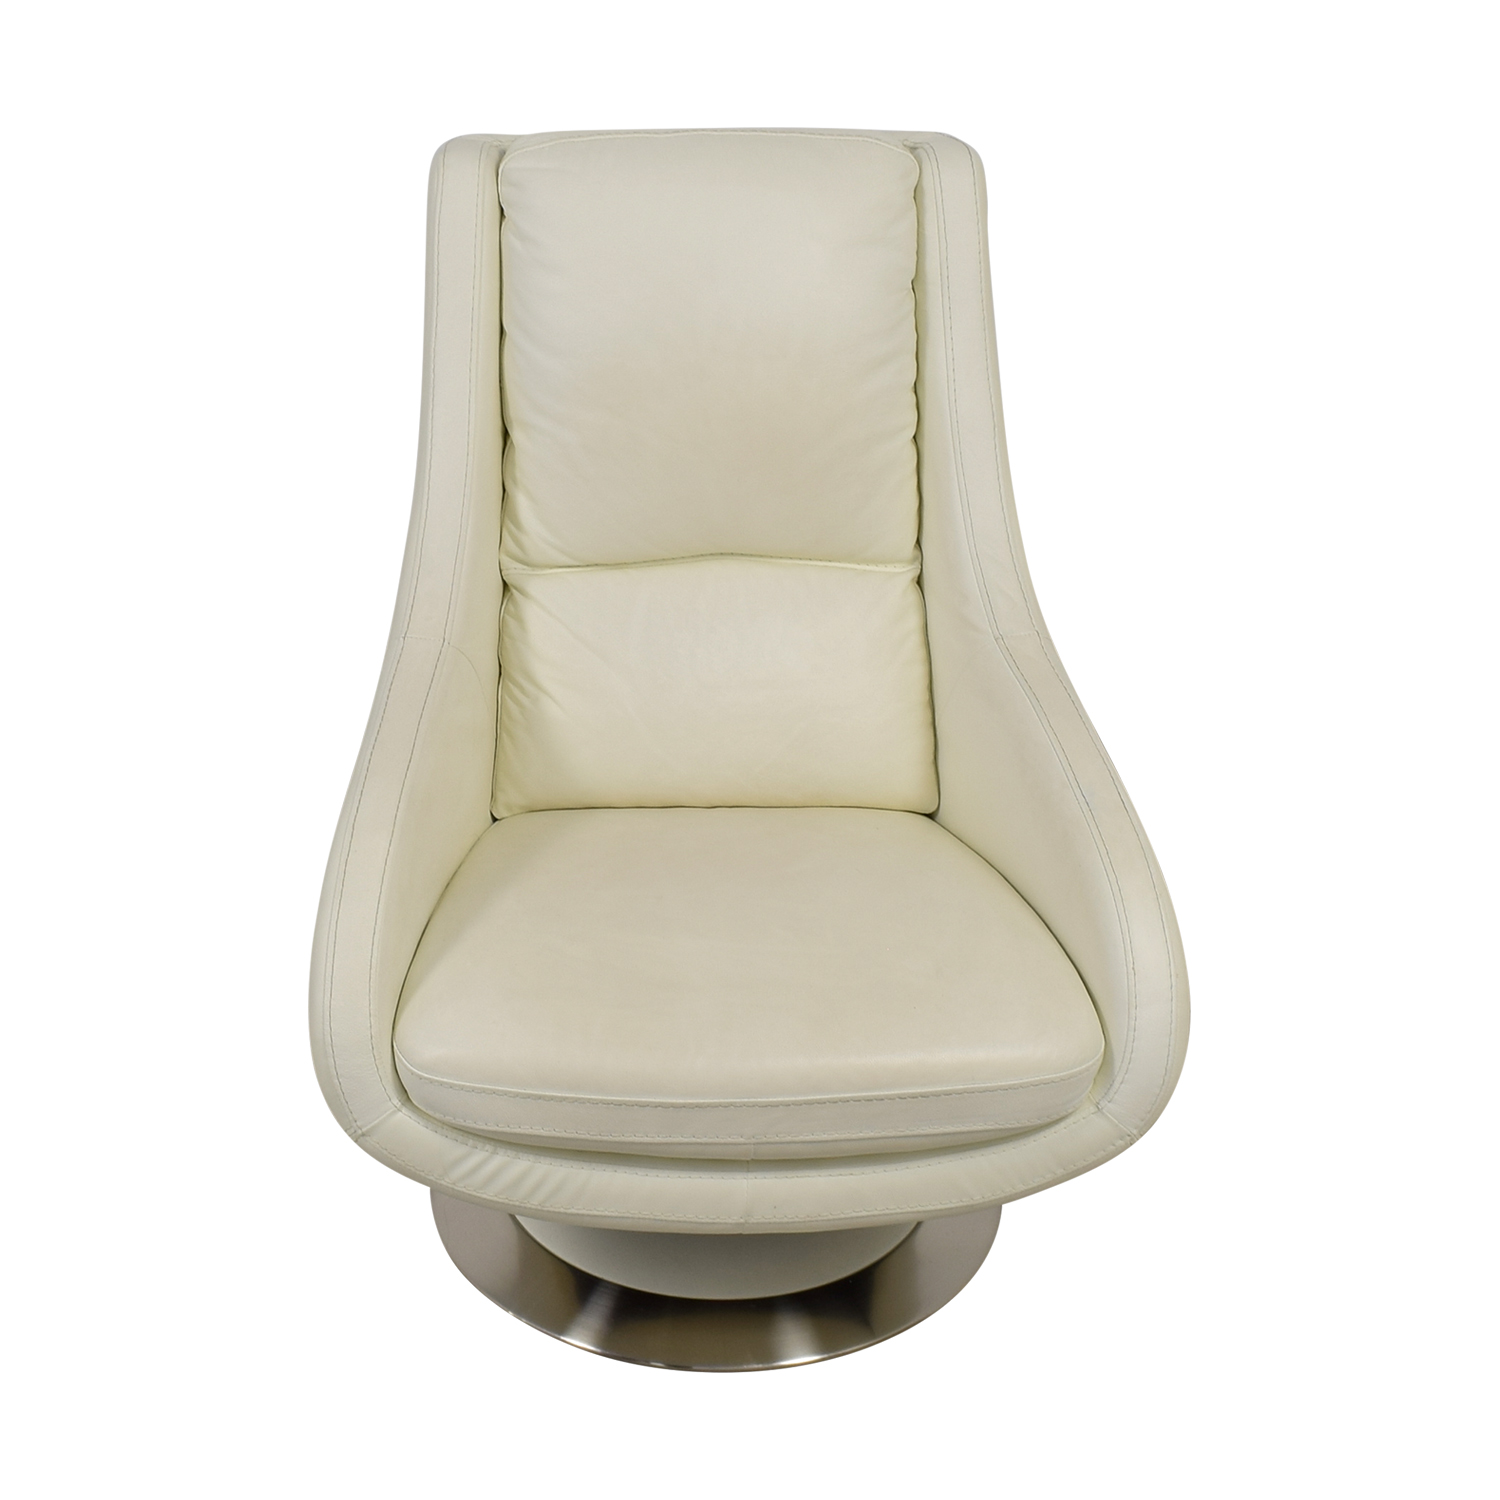 Design Within Reach Design Within Reach White Leather Swivel Chair nj